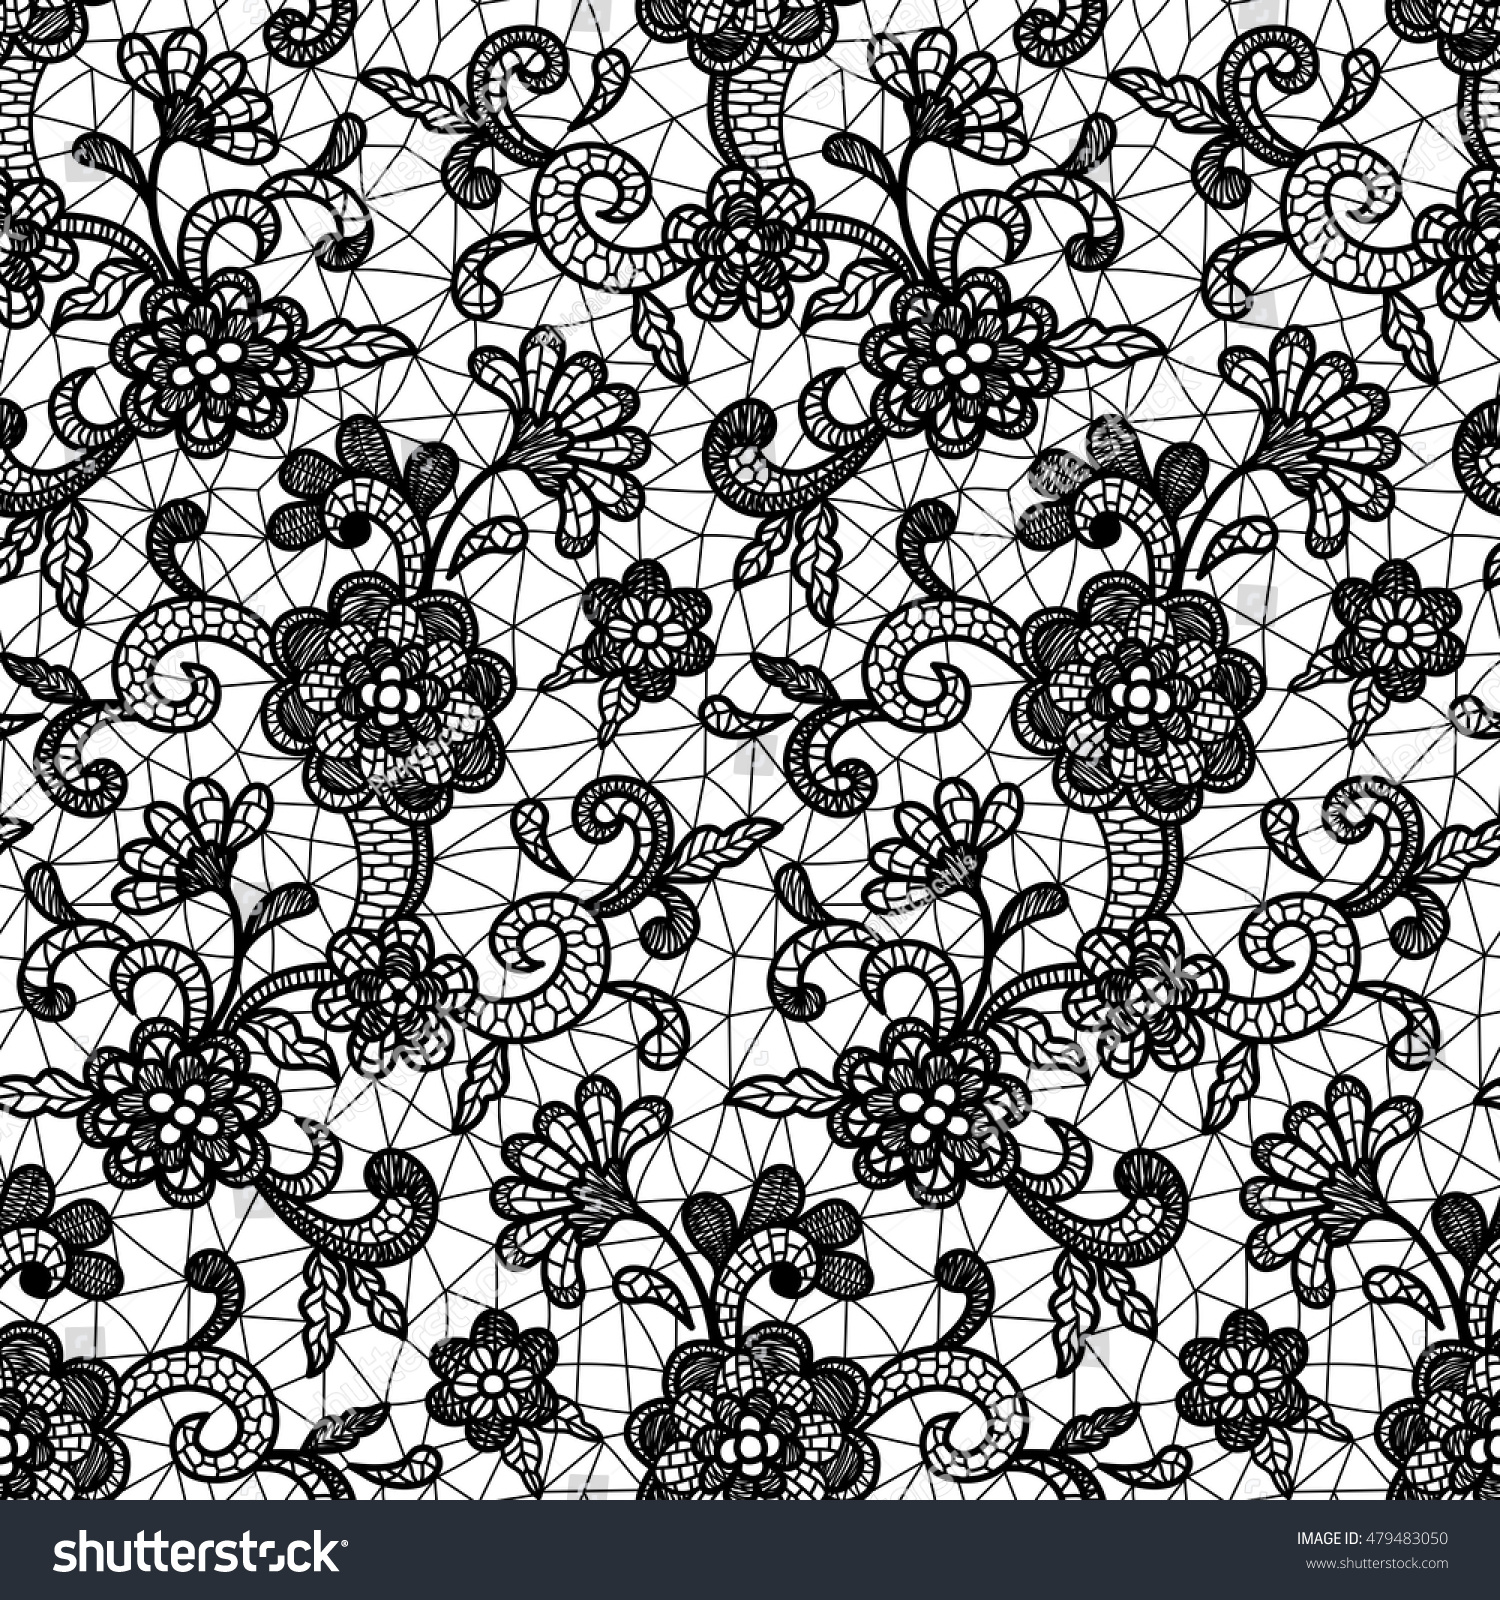 Black and white lace design with floral motifs vector seamless repeating pattern